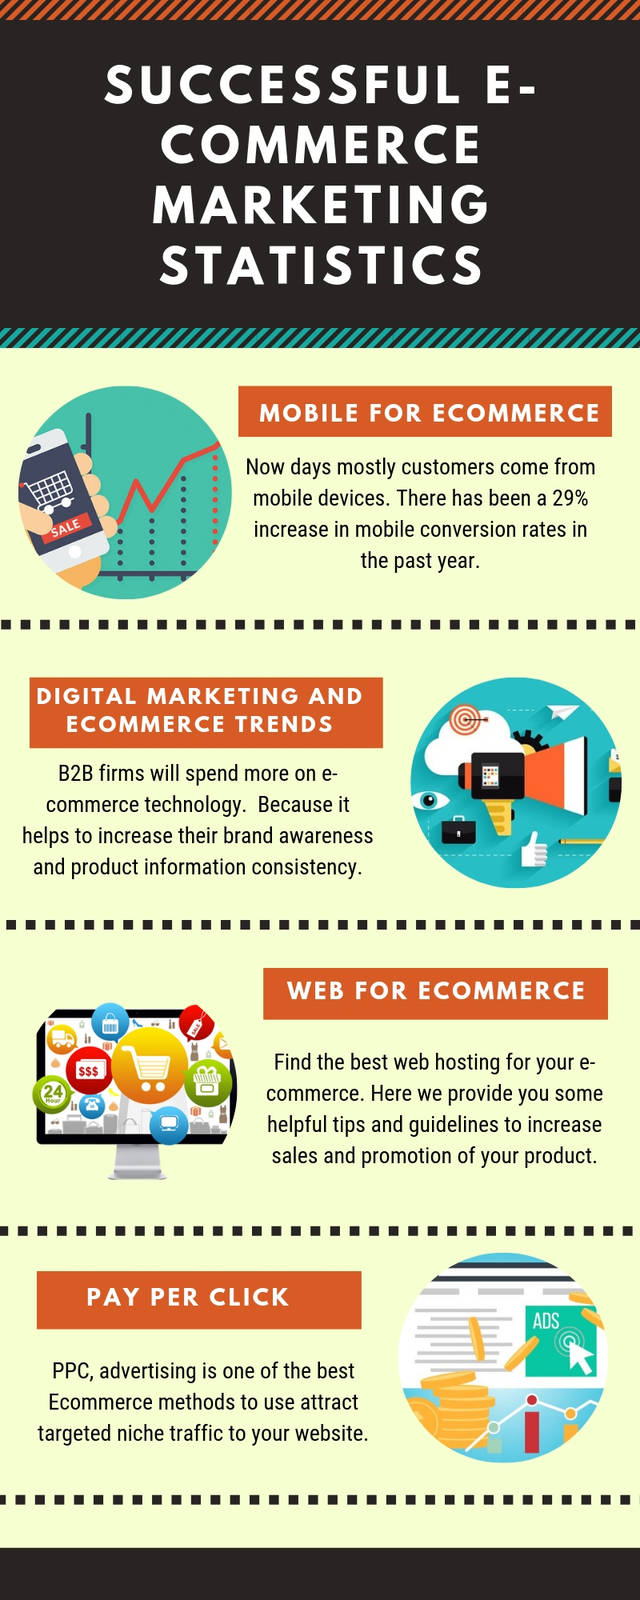 How to find a successful b2b e commerce marketing strategies